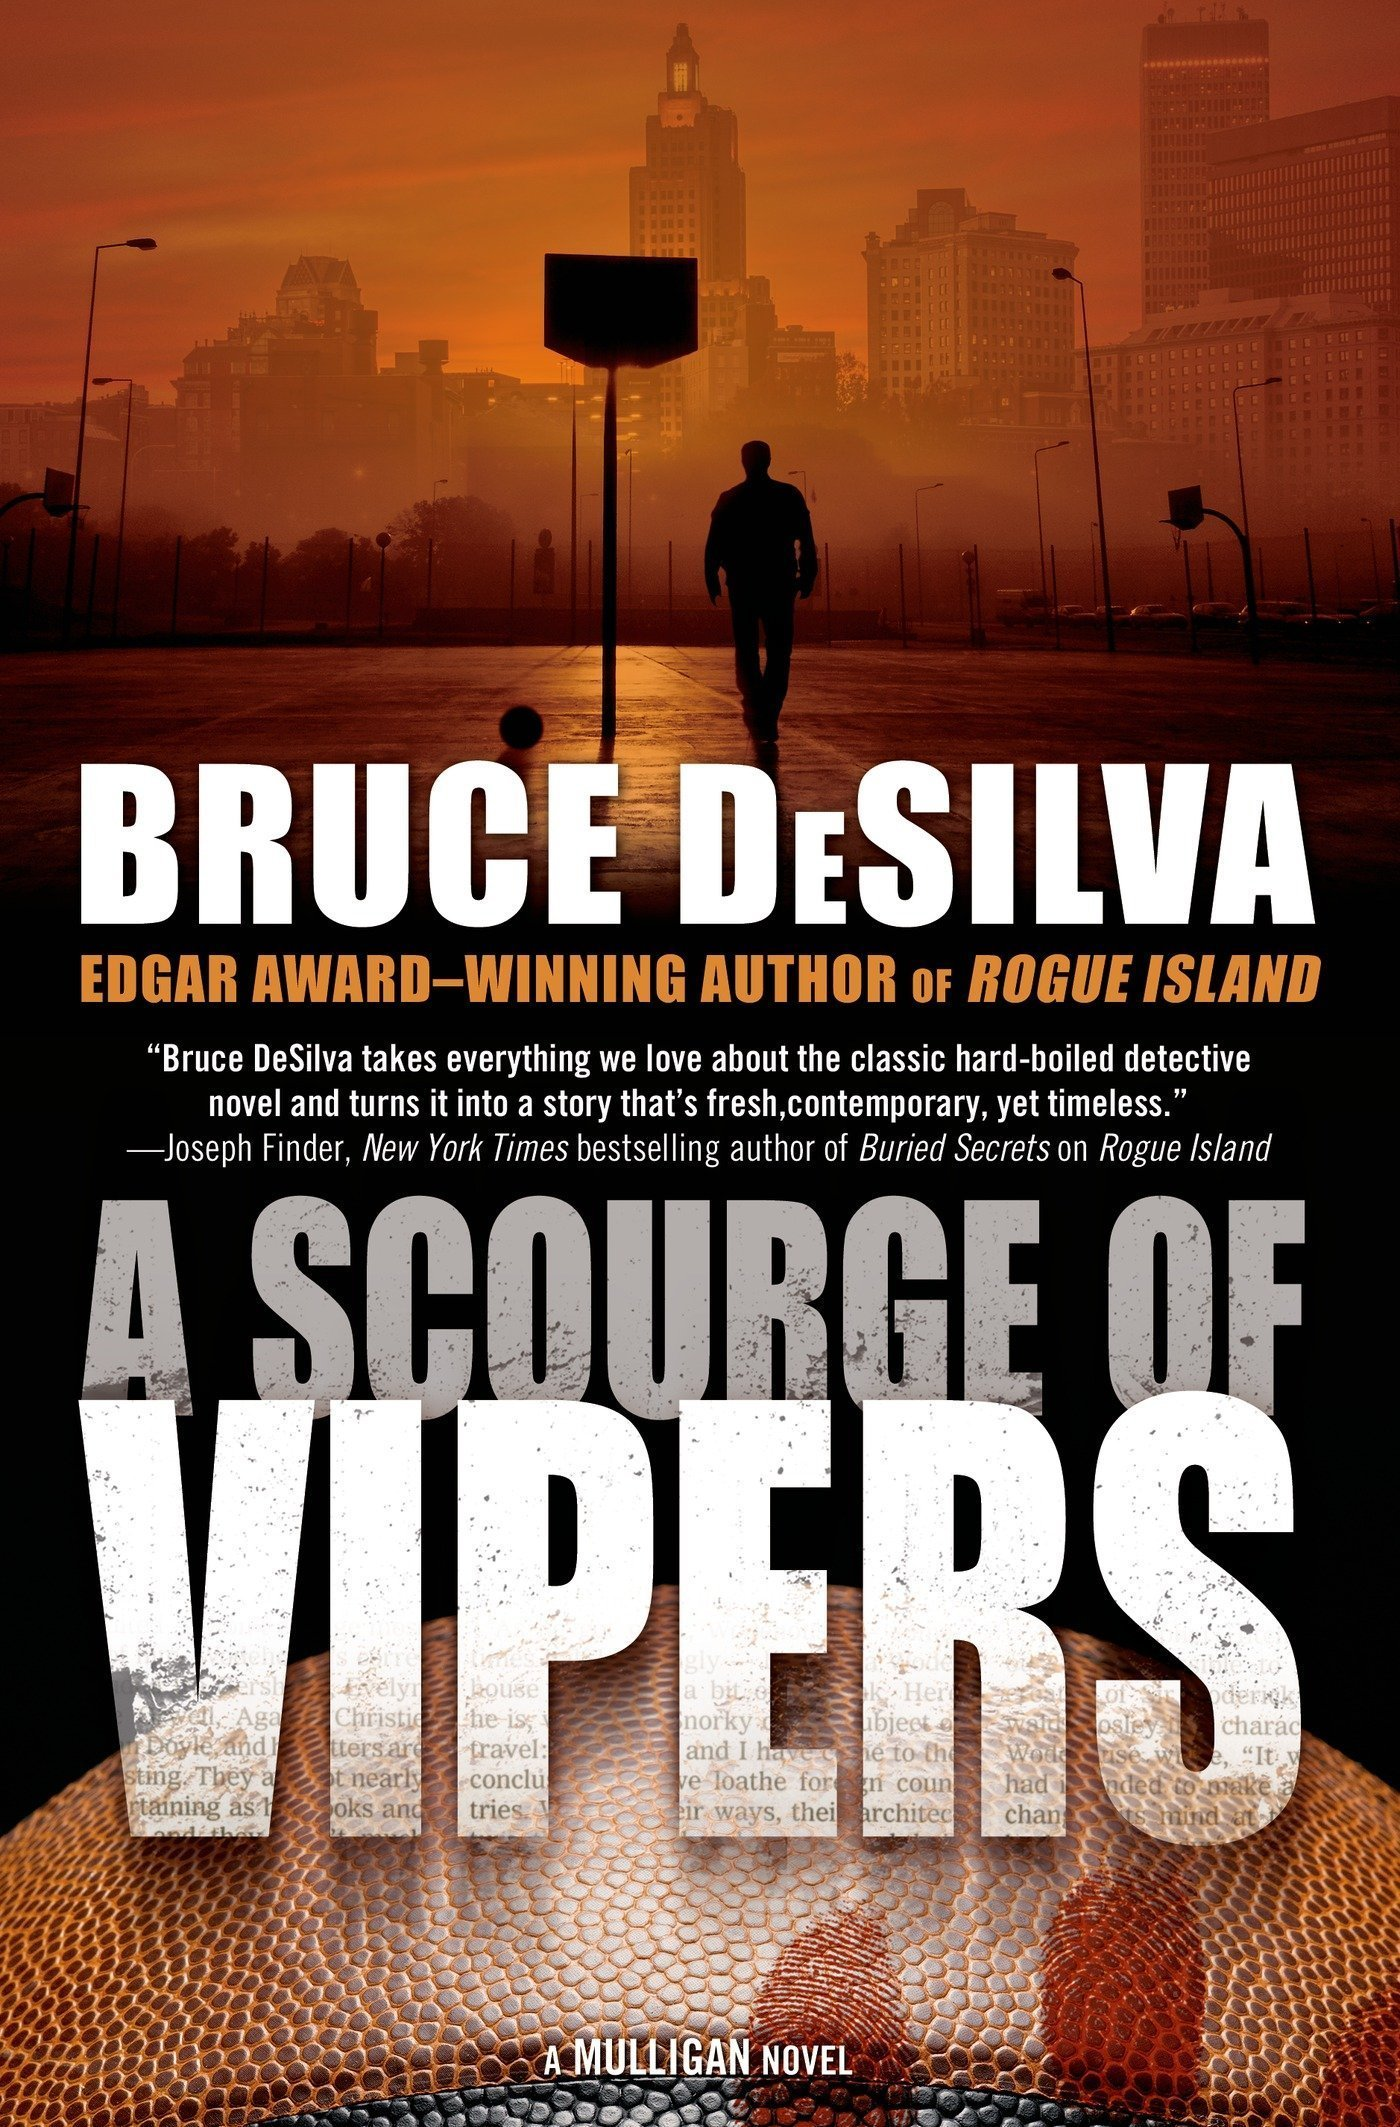 Scourge of Vipers